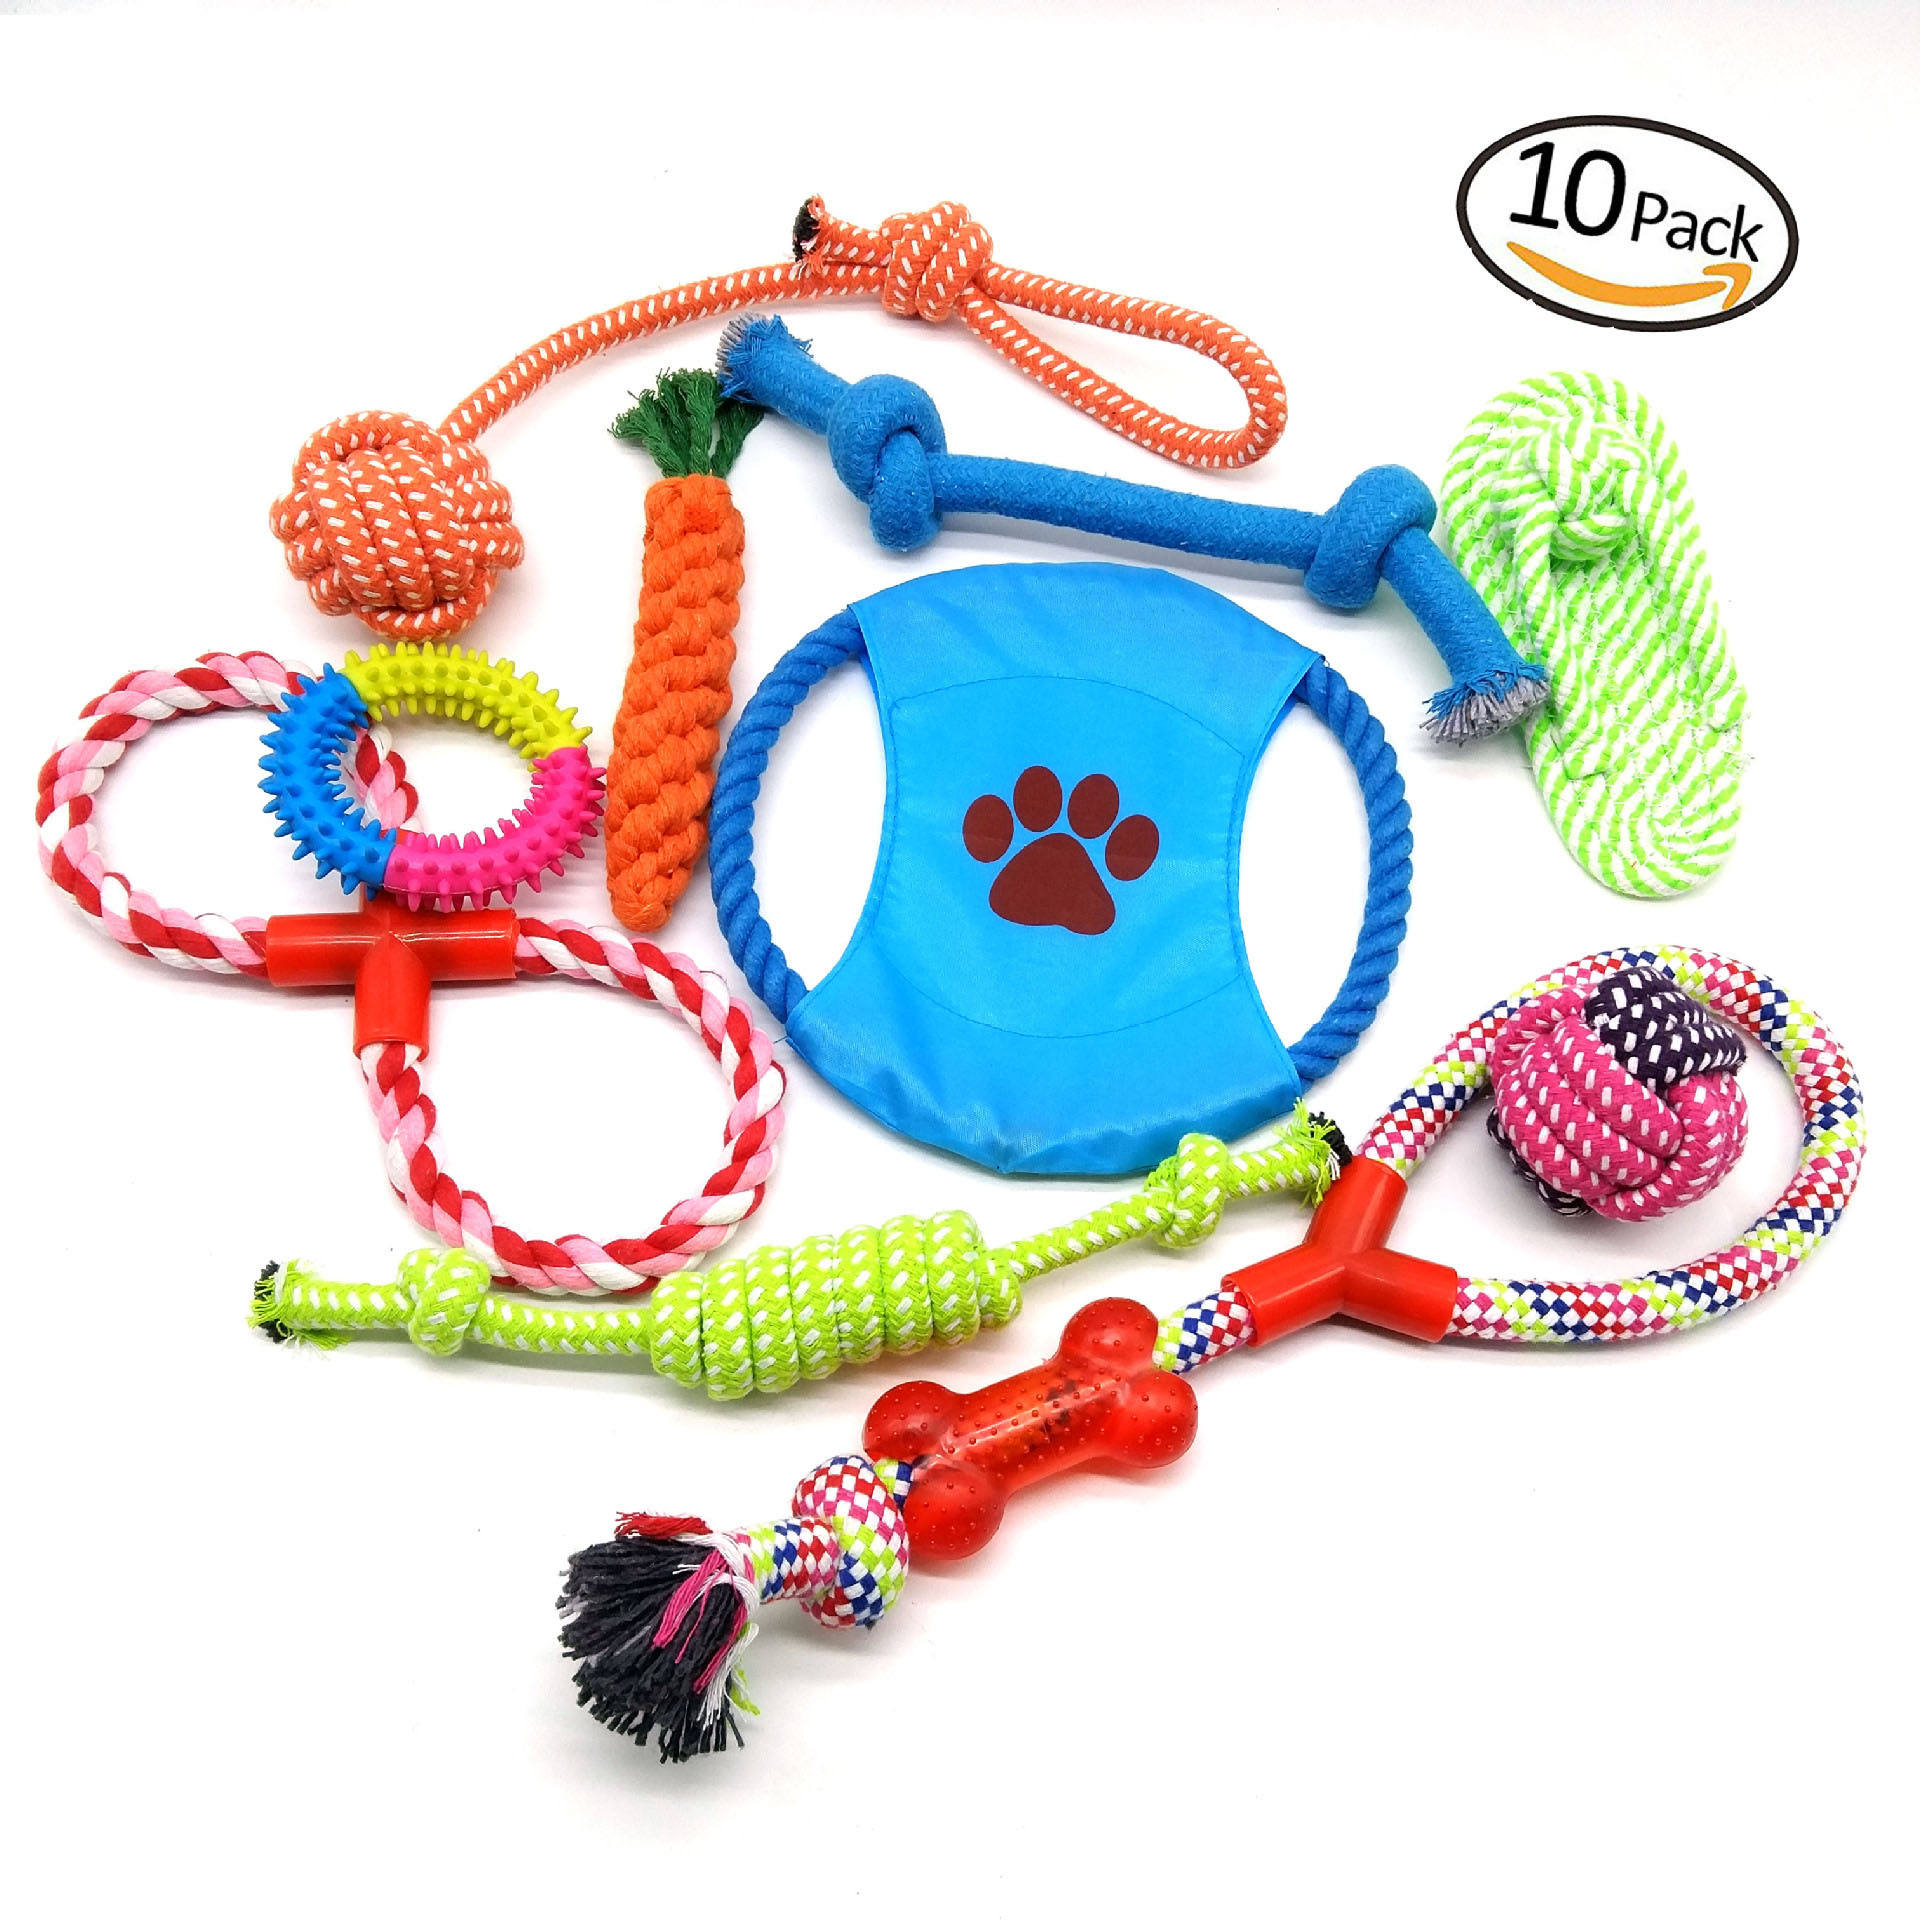 Amazon best selling pet toy kit 10 pack most popular dog toys for small dogs & puppies